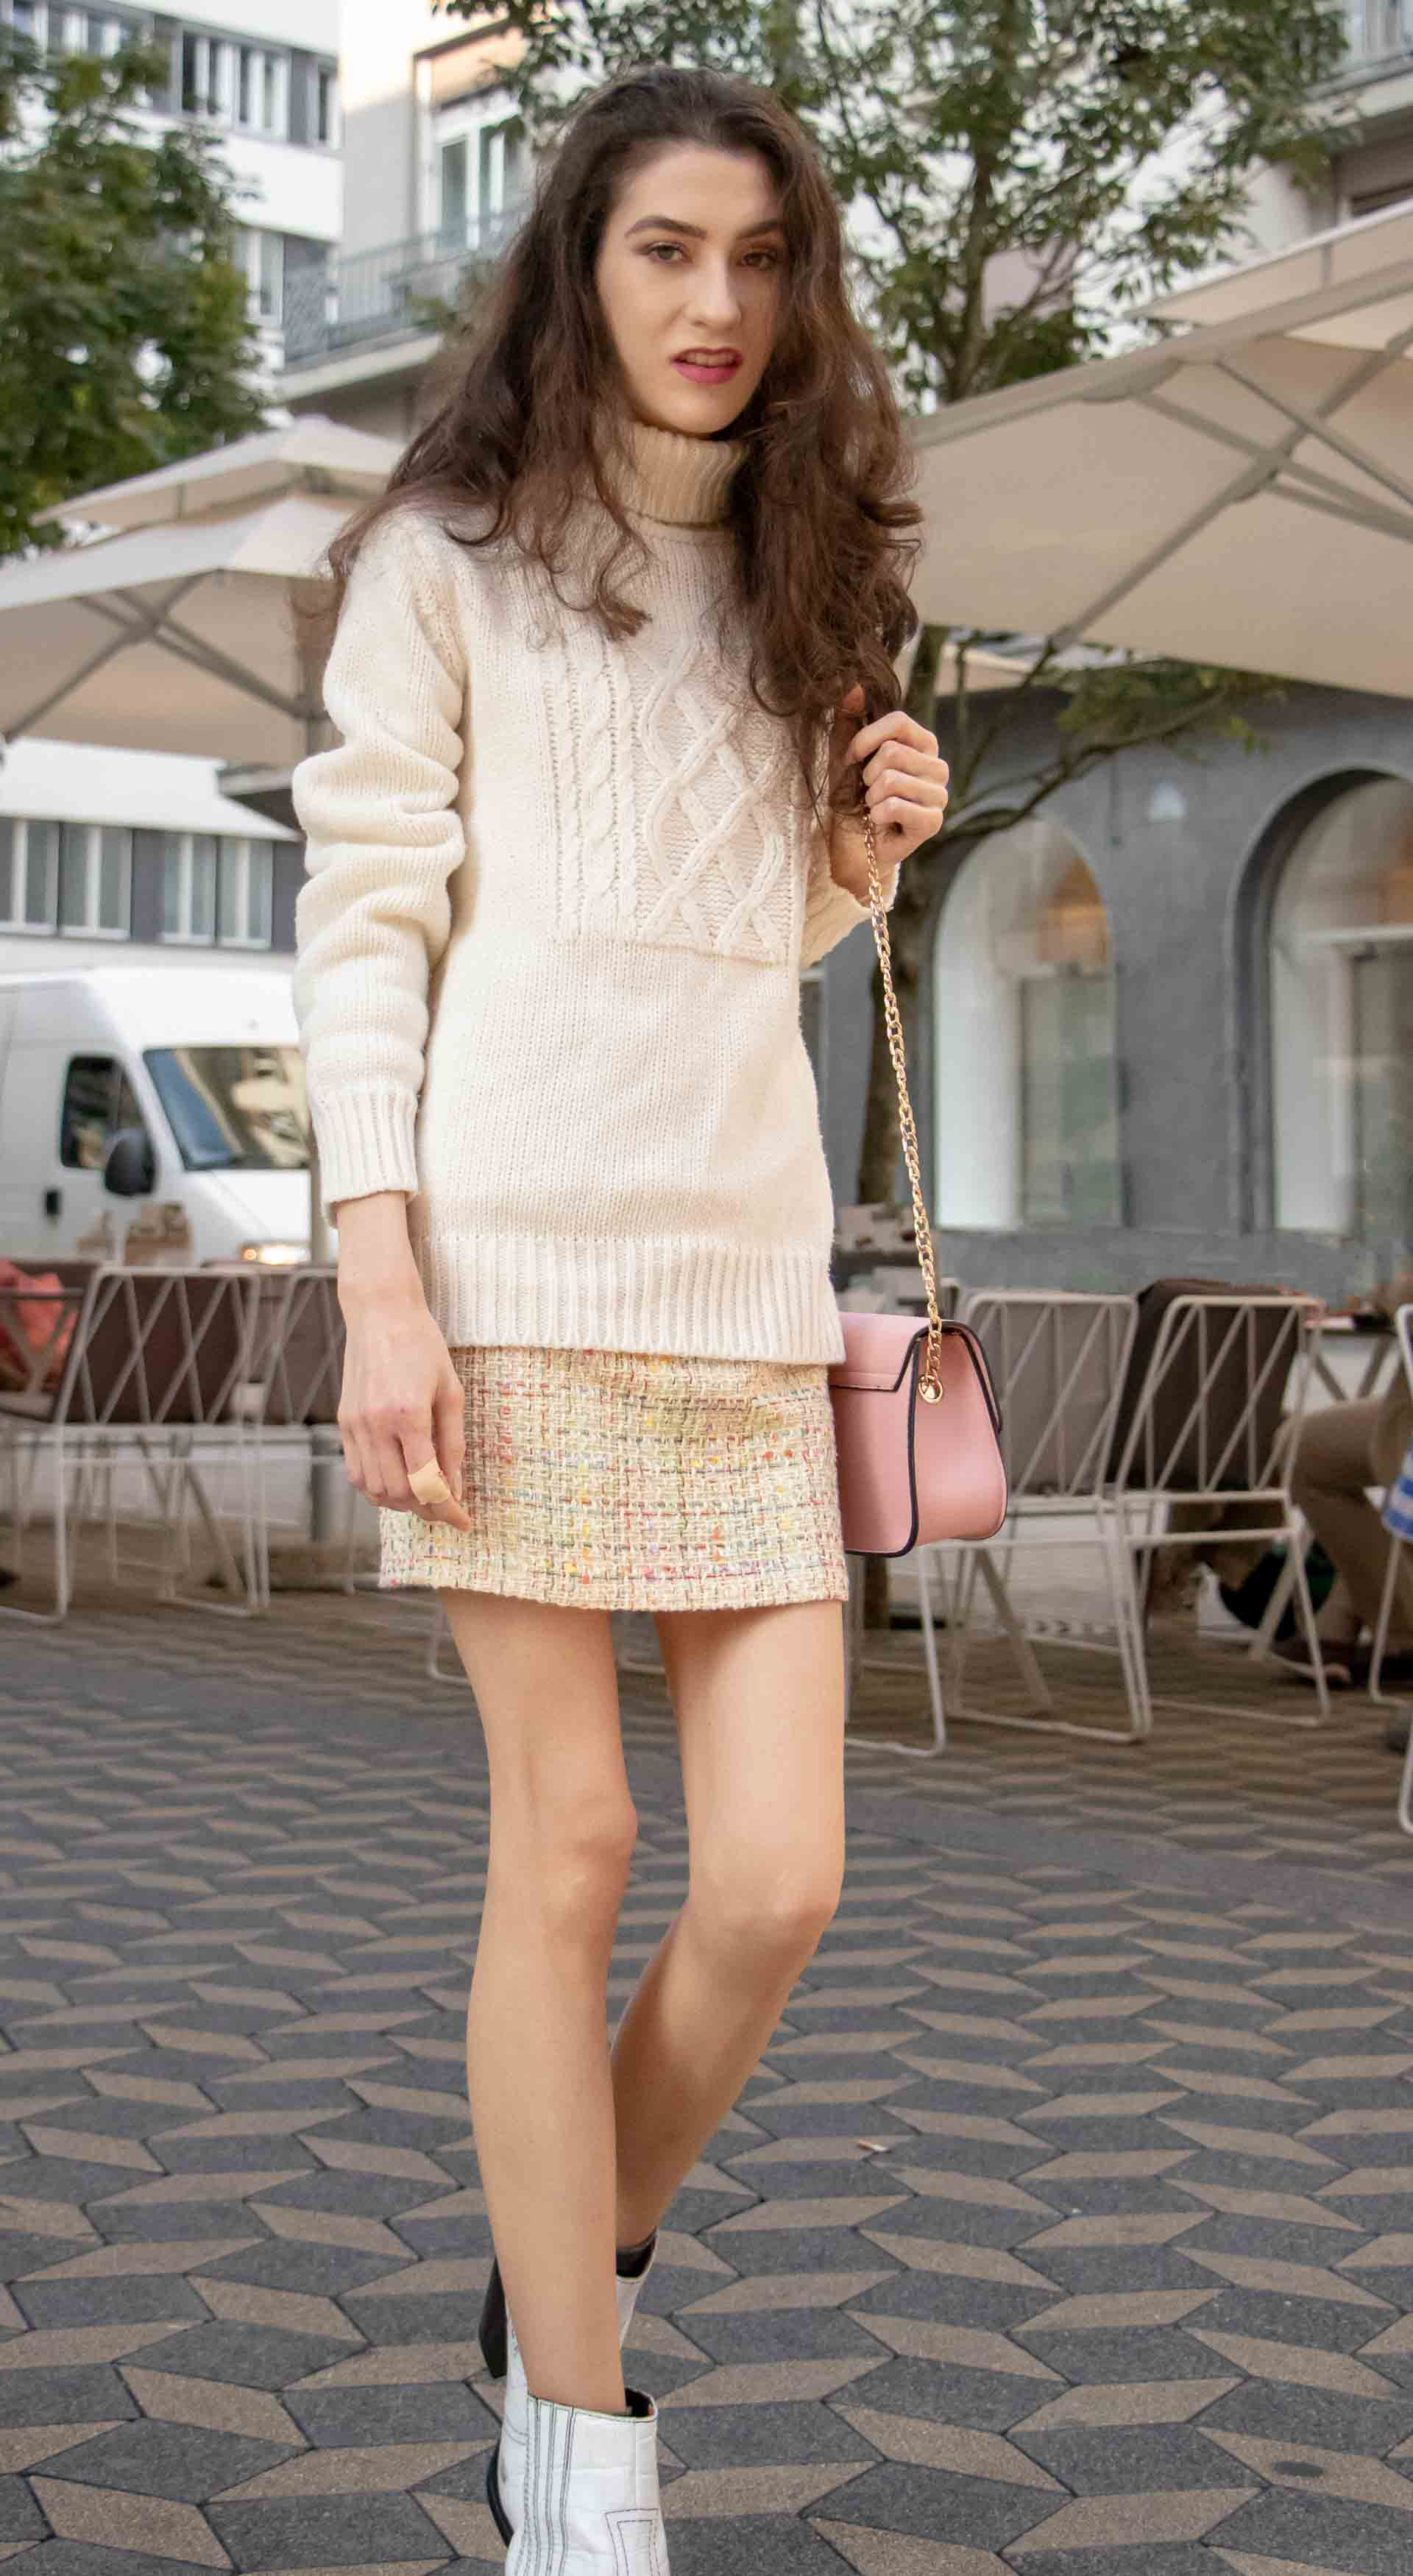 Beautiful Slovenian Fashion Blogger Veronika Lipar of Brunette from Wall dressed in white Ganni Western boots, yellow tweed skirt, white turtleneck sweater, chain strap shoulder bag for brunch on the street in the morning in Ljubljana in fall